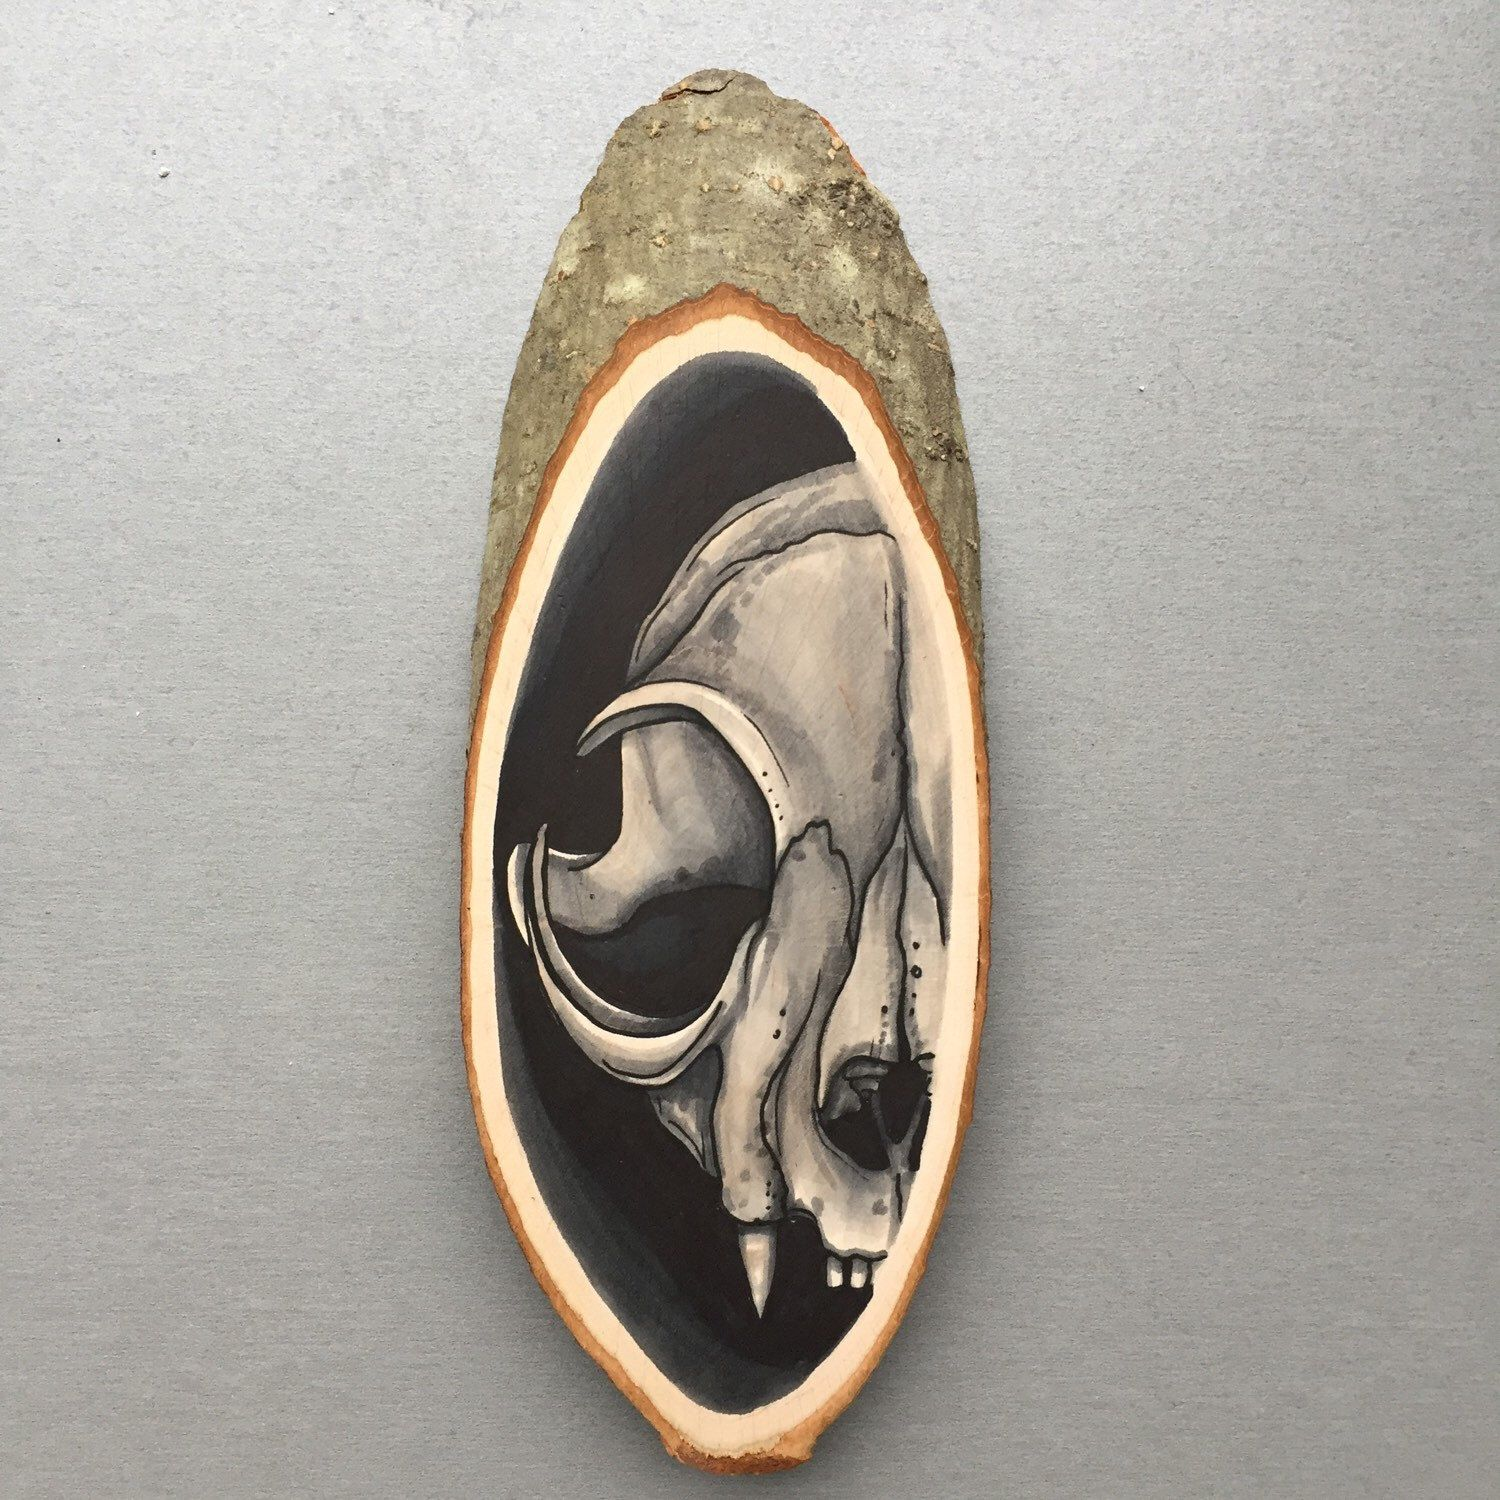 Wood slice with an original drawing of a feline cat skull wall